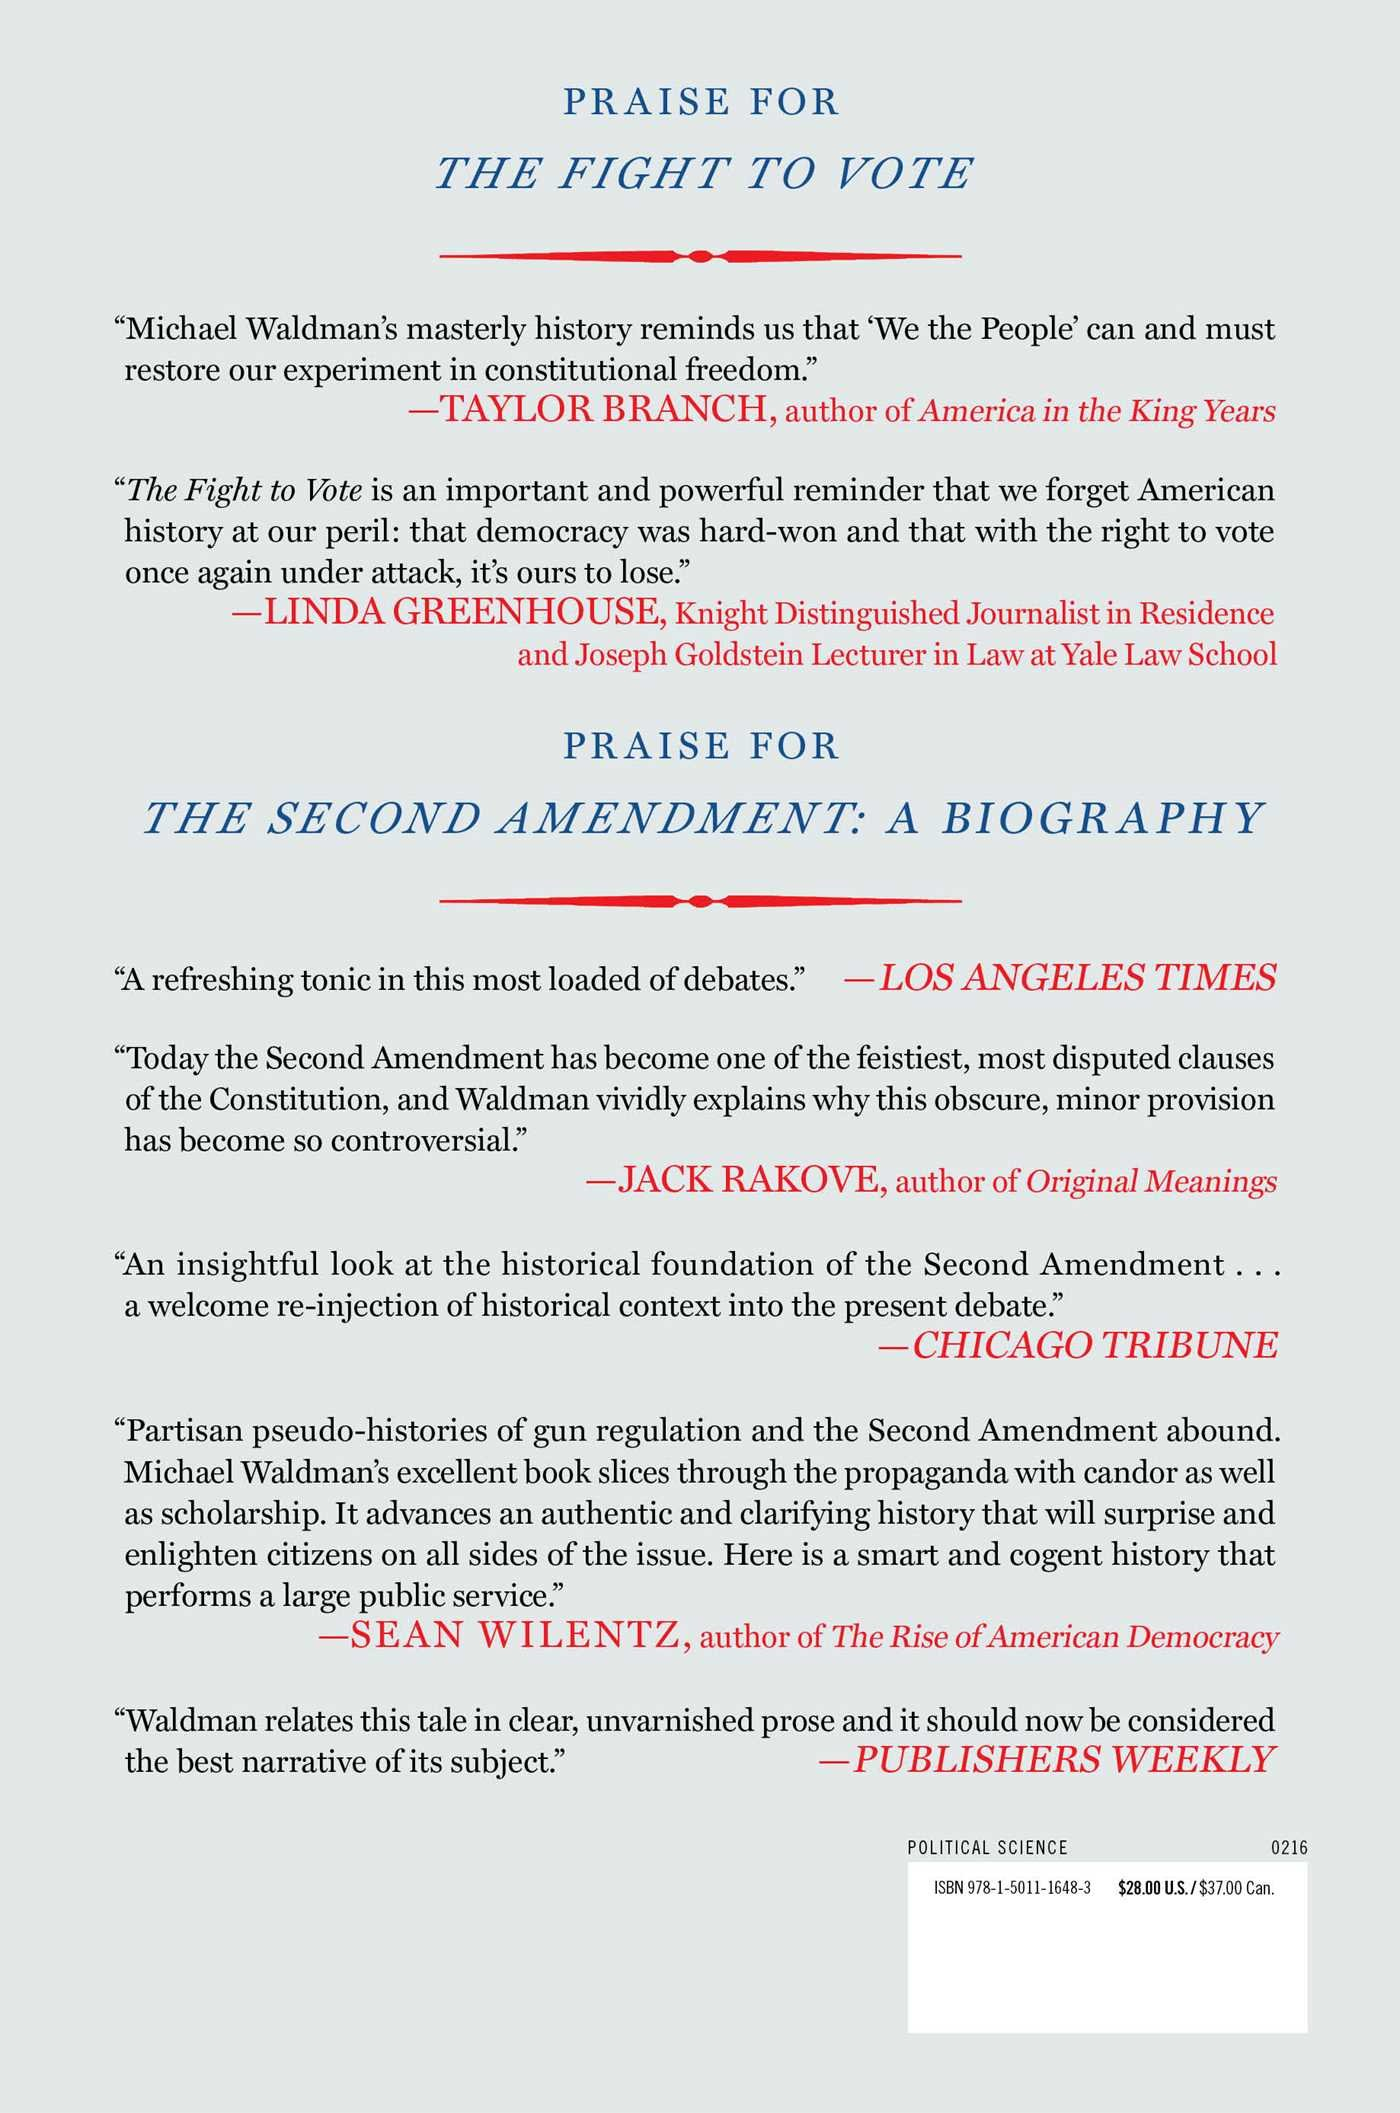 The second amendment issues - The Second Amendment Issues 83